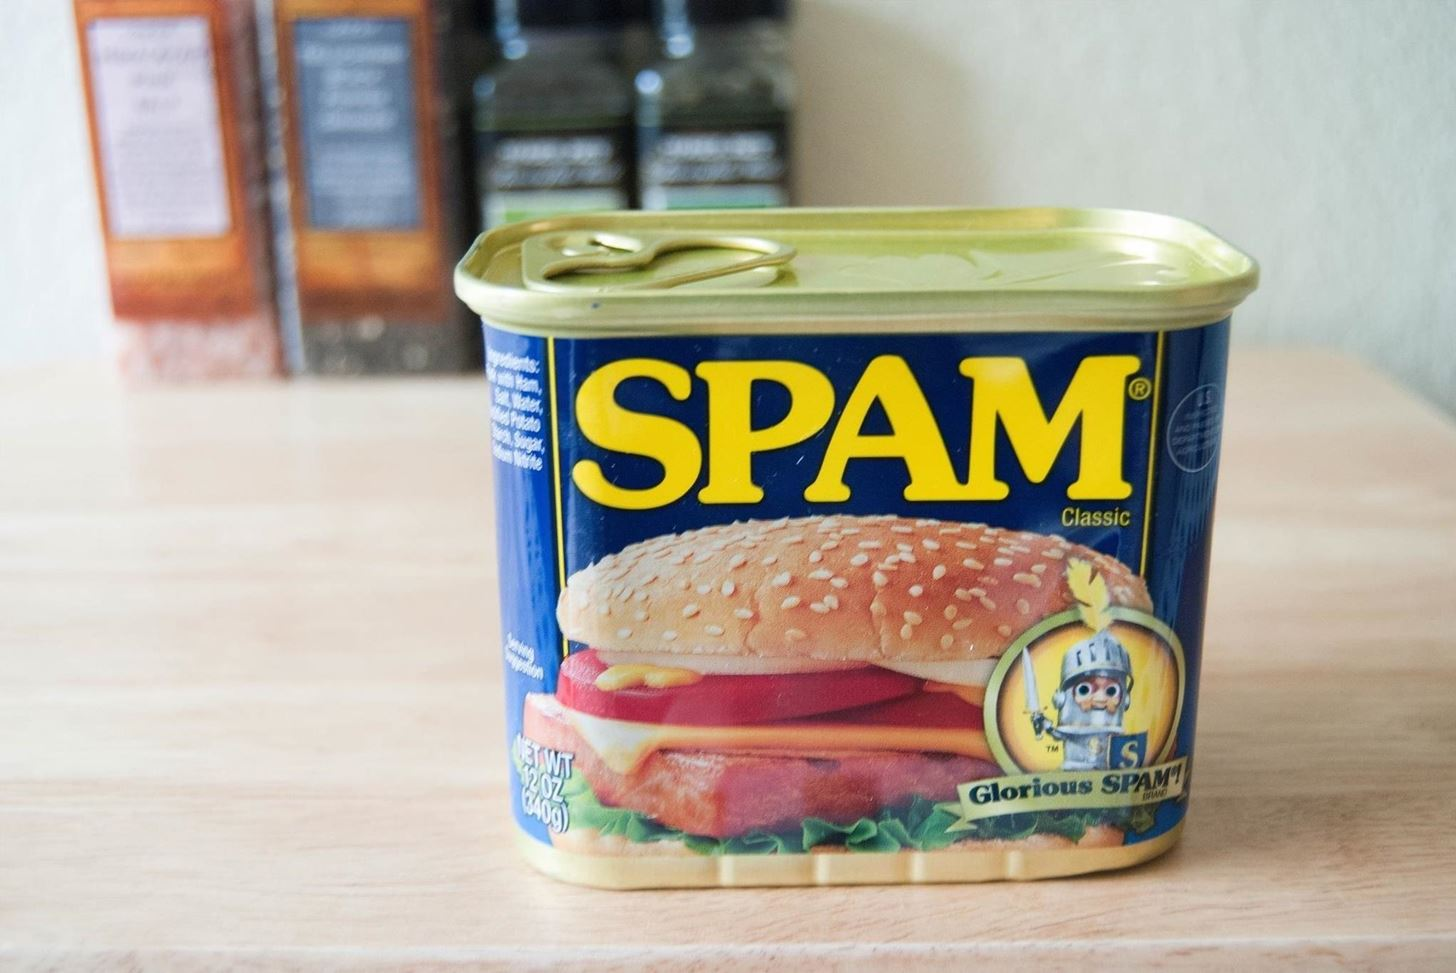 How Spam Went from Hated Ration to Cult Classic